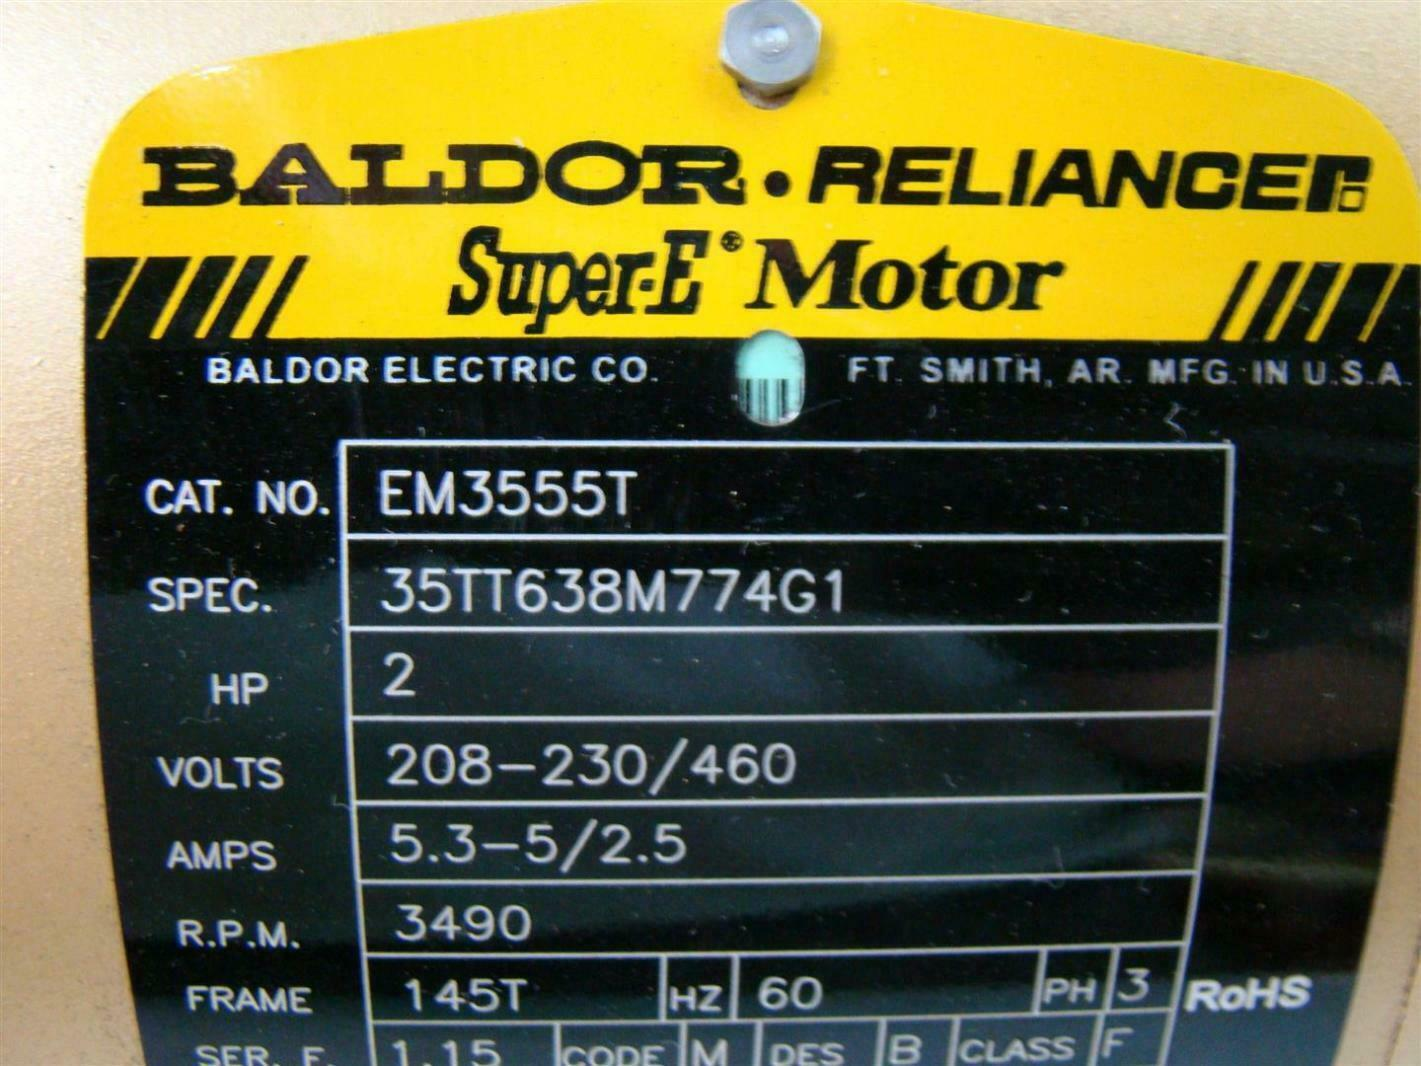 baldor reliance super e motor 2hp 208 230 460v 5 3 5 2